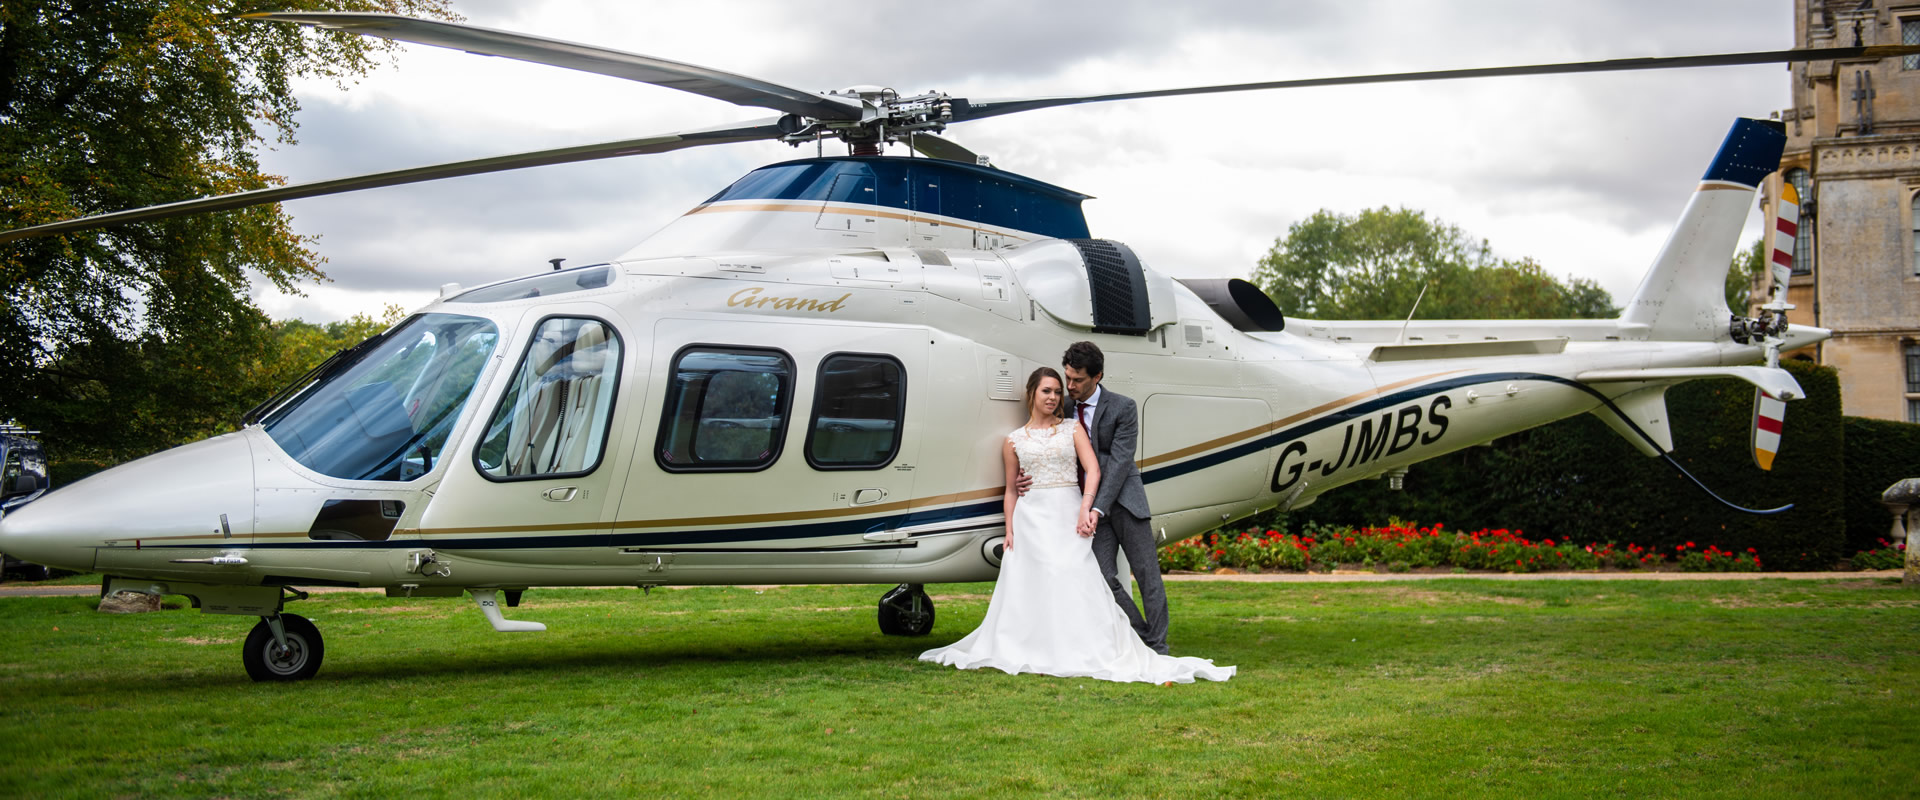 Phantom Hire Helicopter Charter Service throughout UK, Ireland and Europe